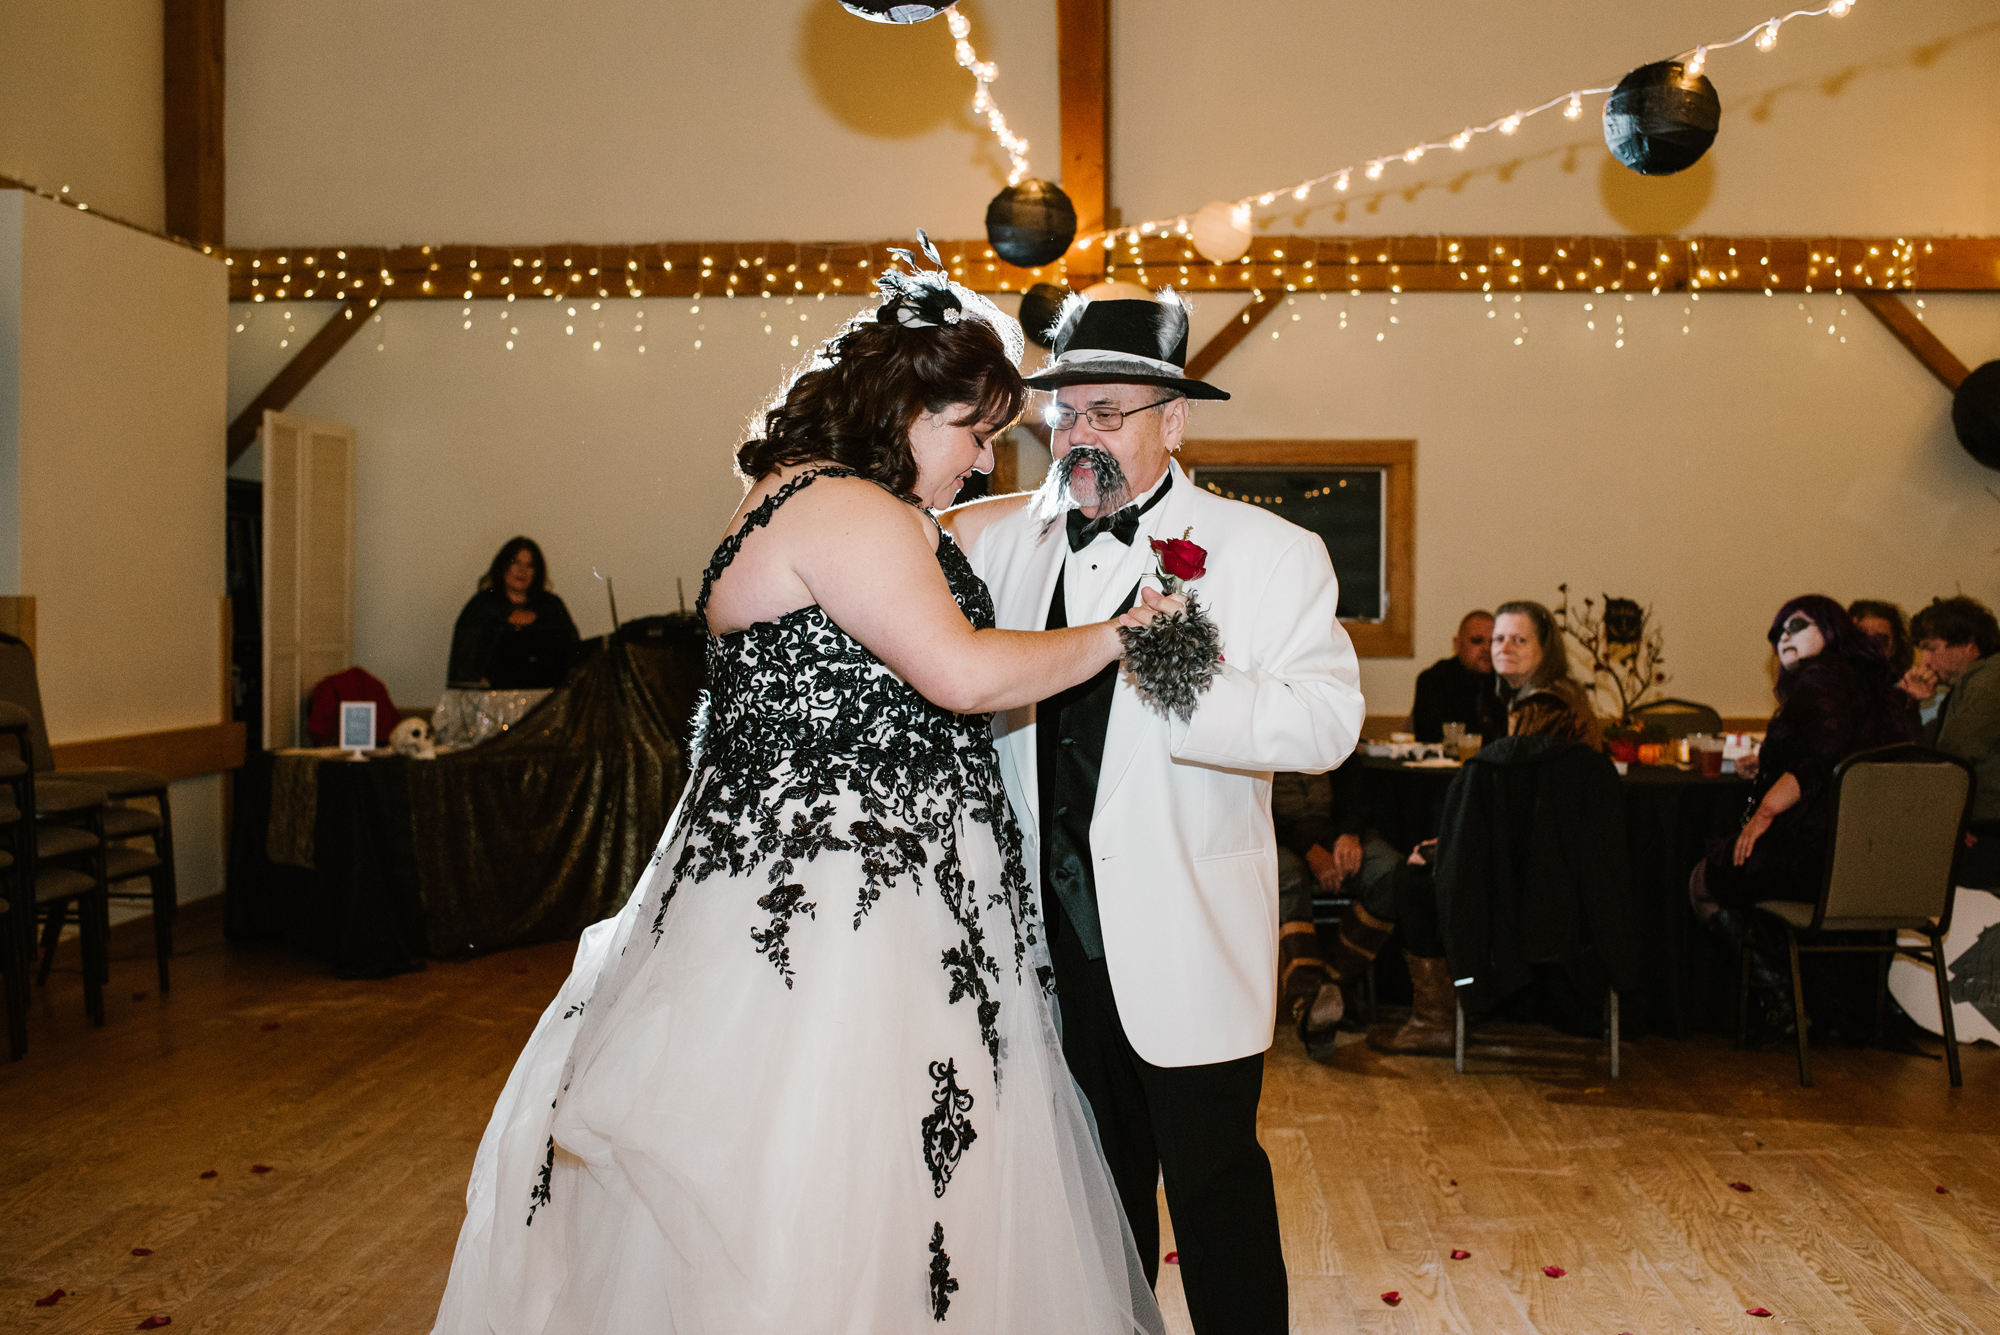 ann-arbor-michigan-halloween-themed-wedding-dancing-photos (19).jpg